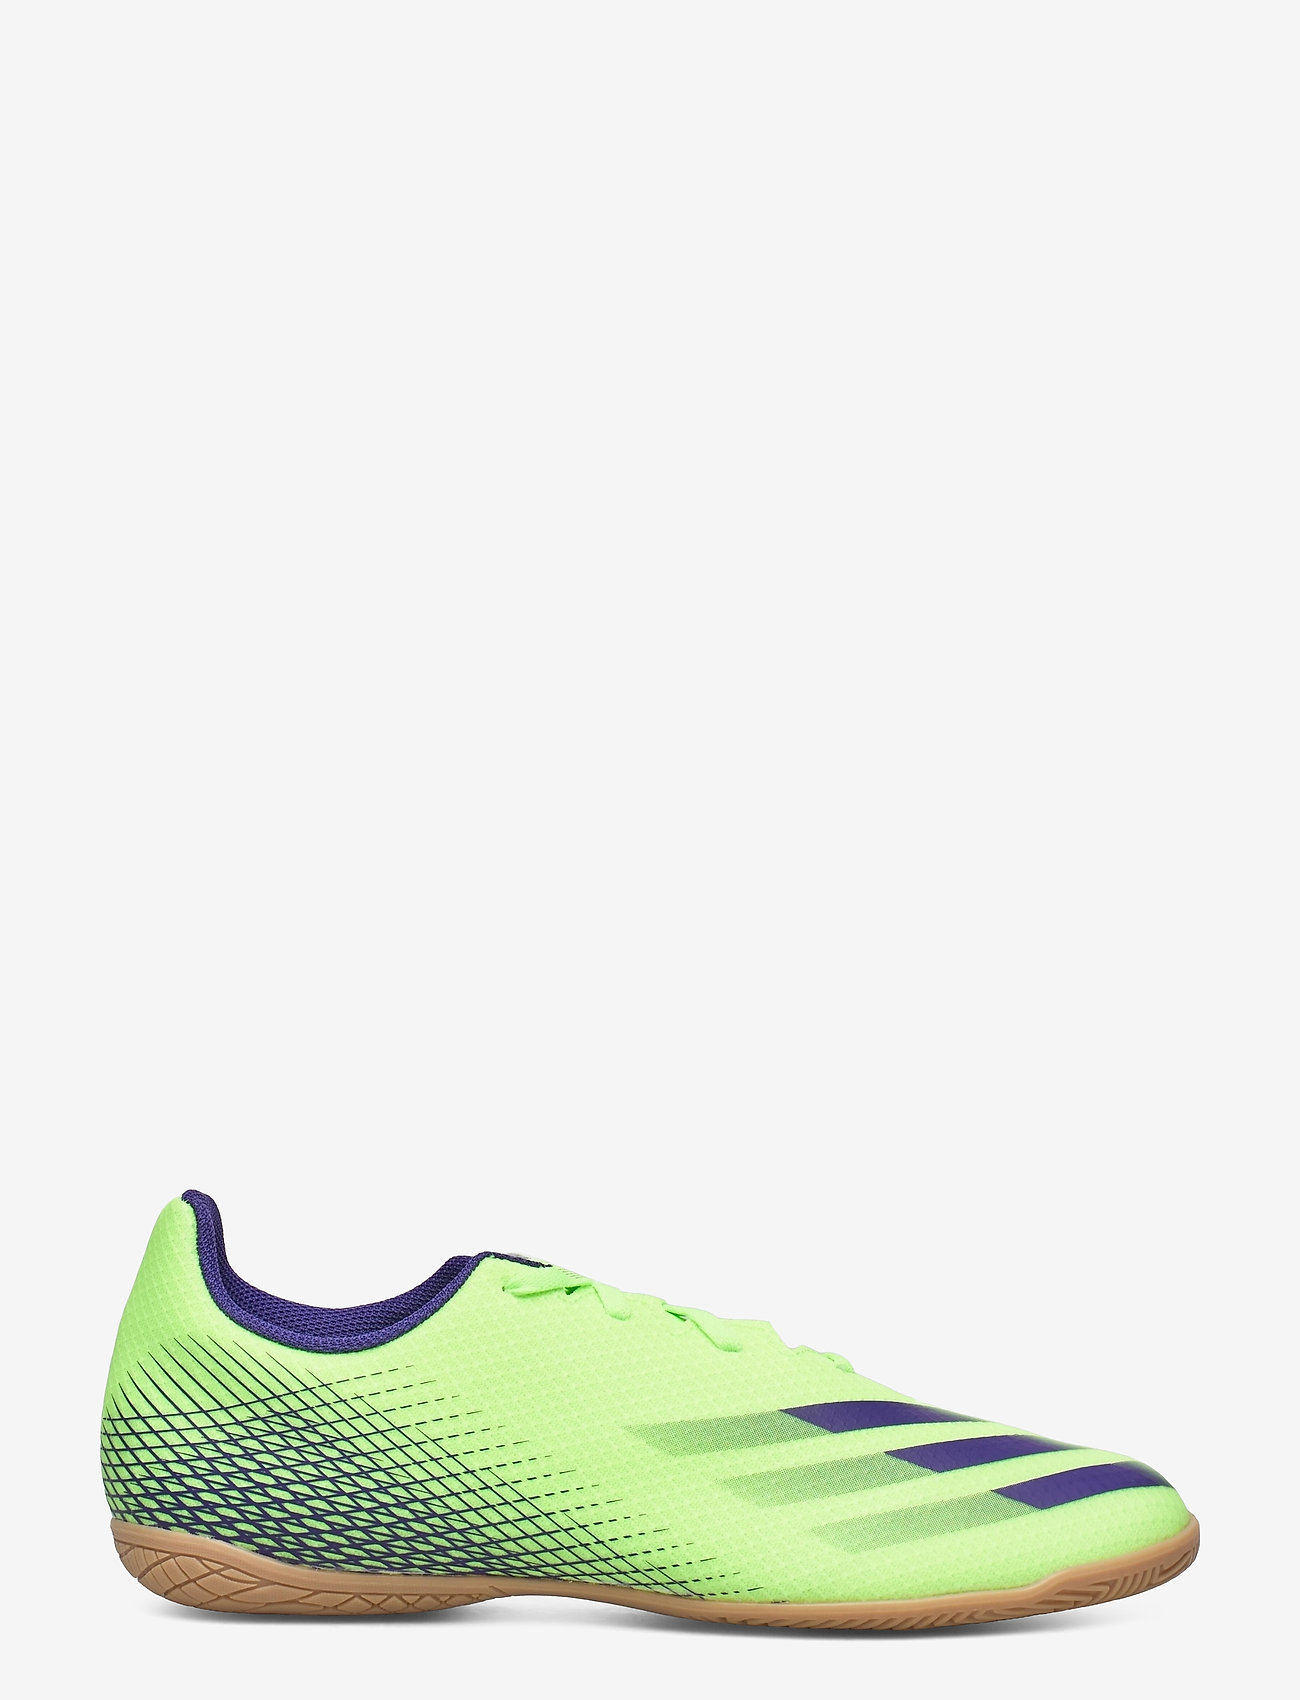 adidas Performance - X GHOSTED.4 IN - fodboldsko - siggnr/eneink/siggnr - 1